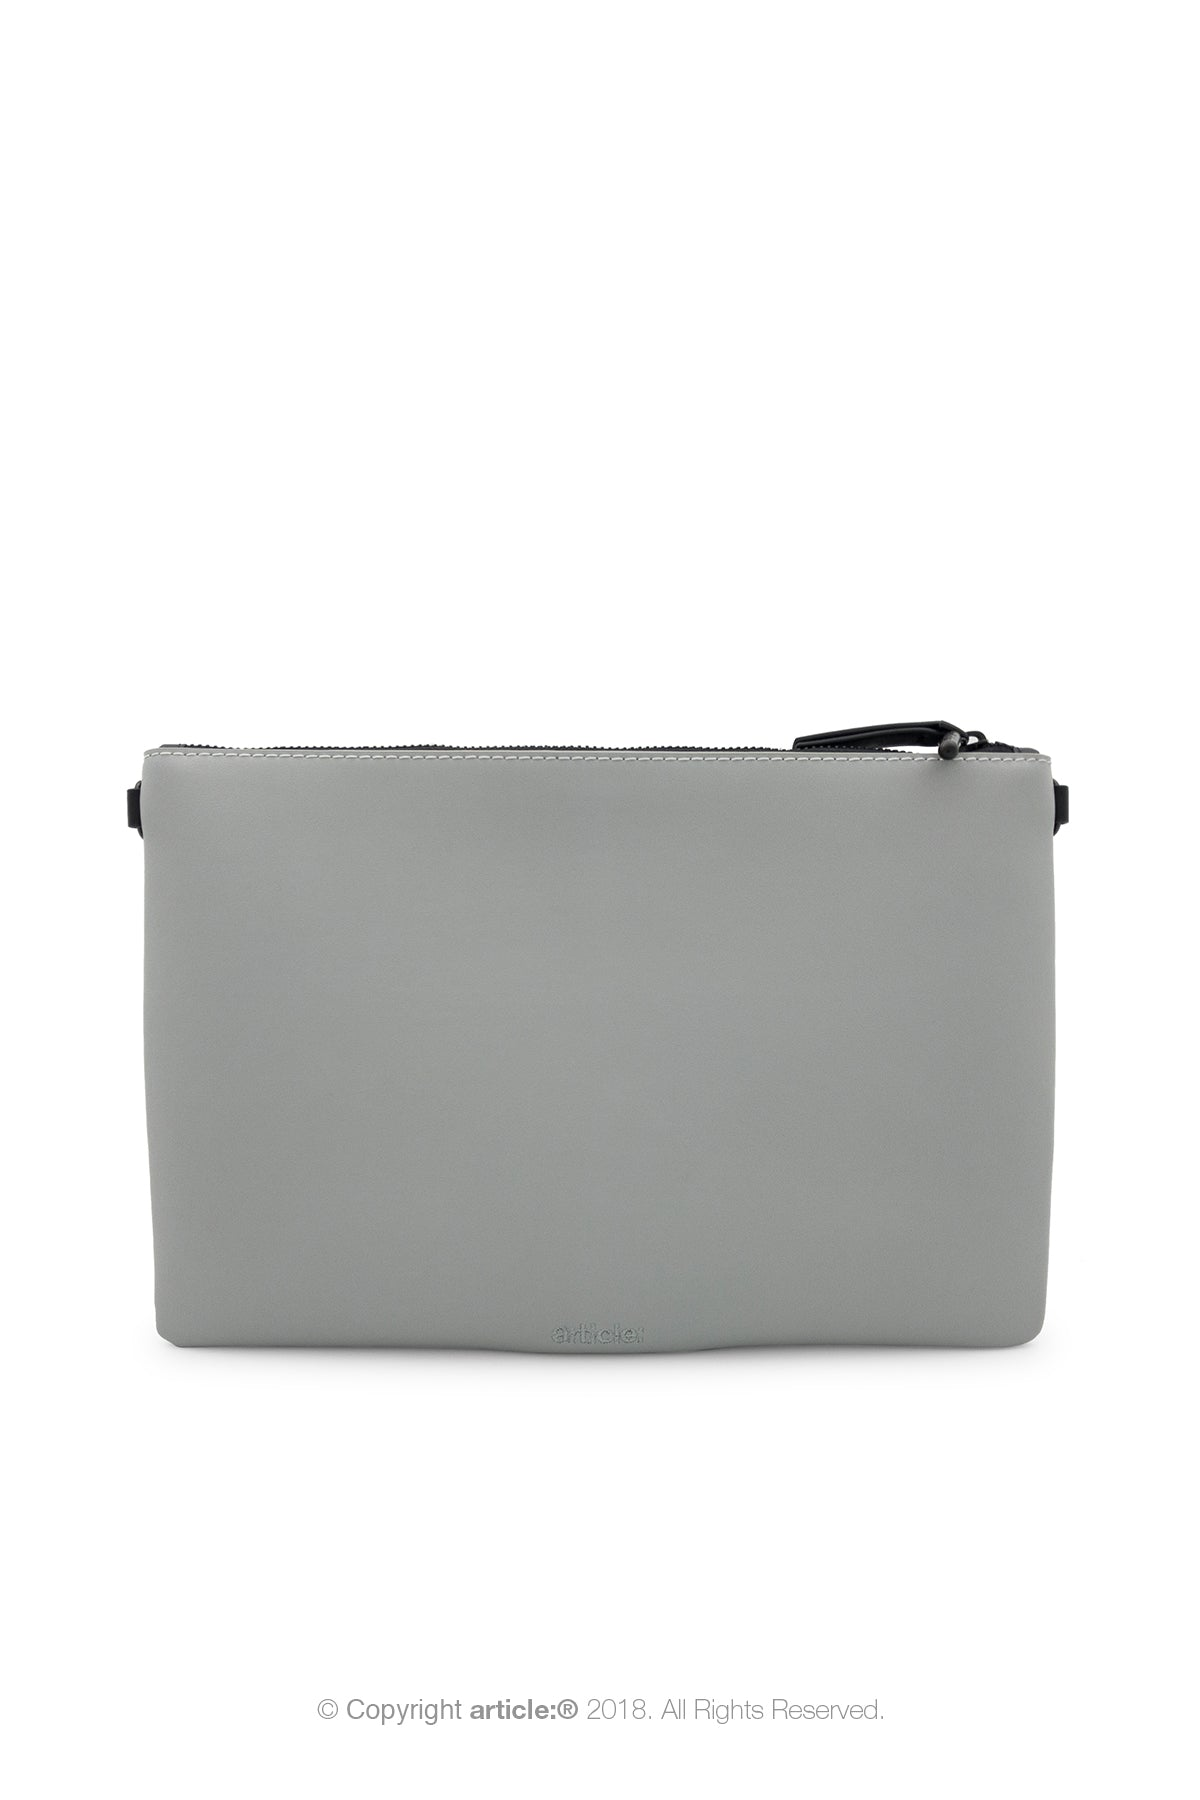 article: #079 Pochette Grande Flat Men - Noir + Gris